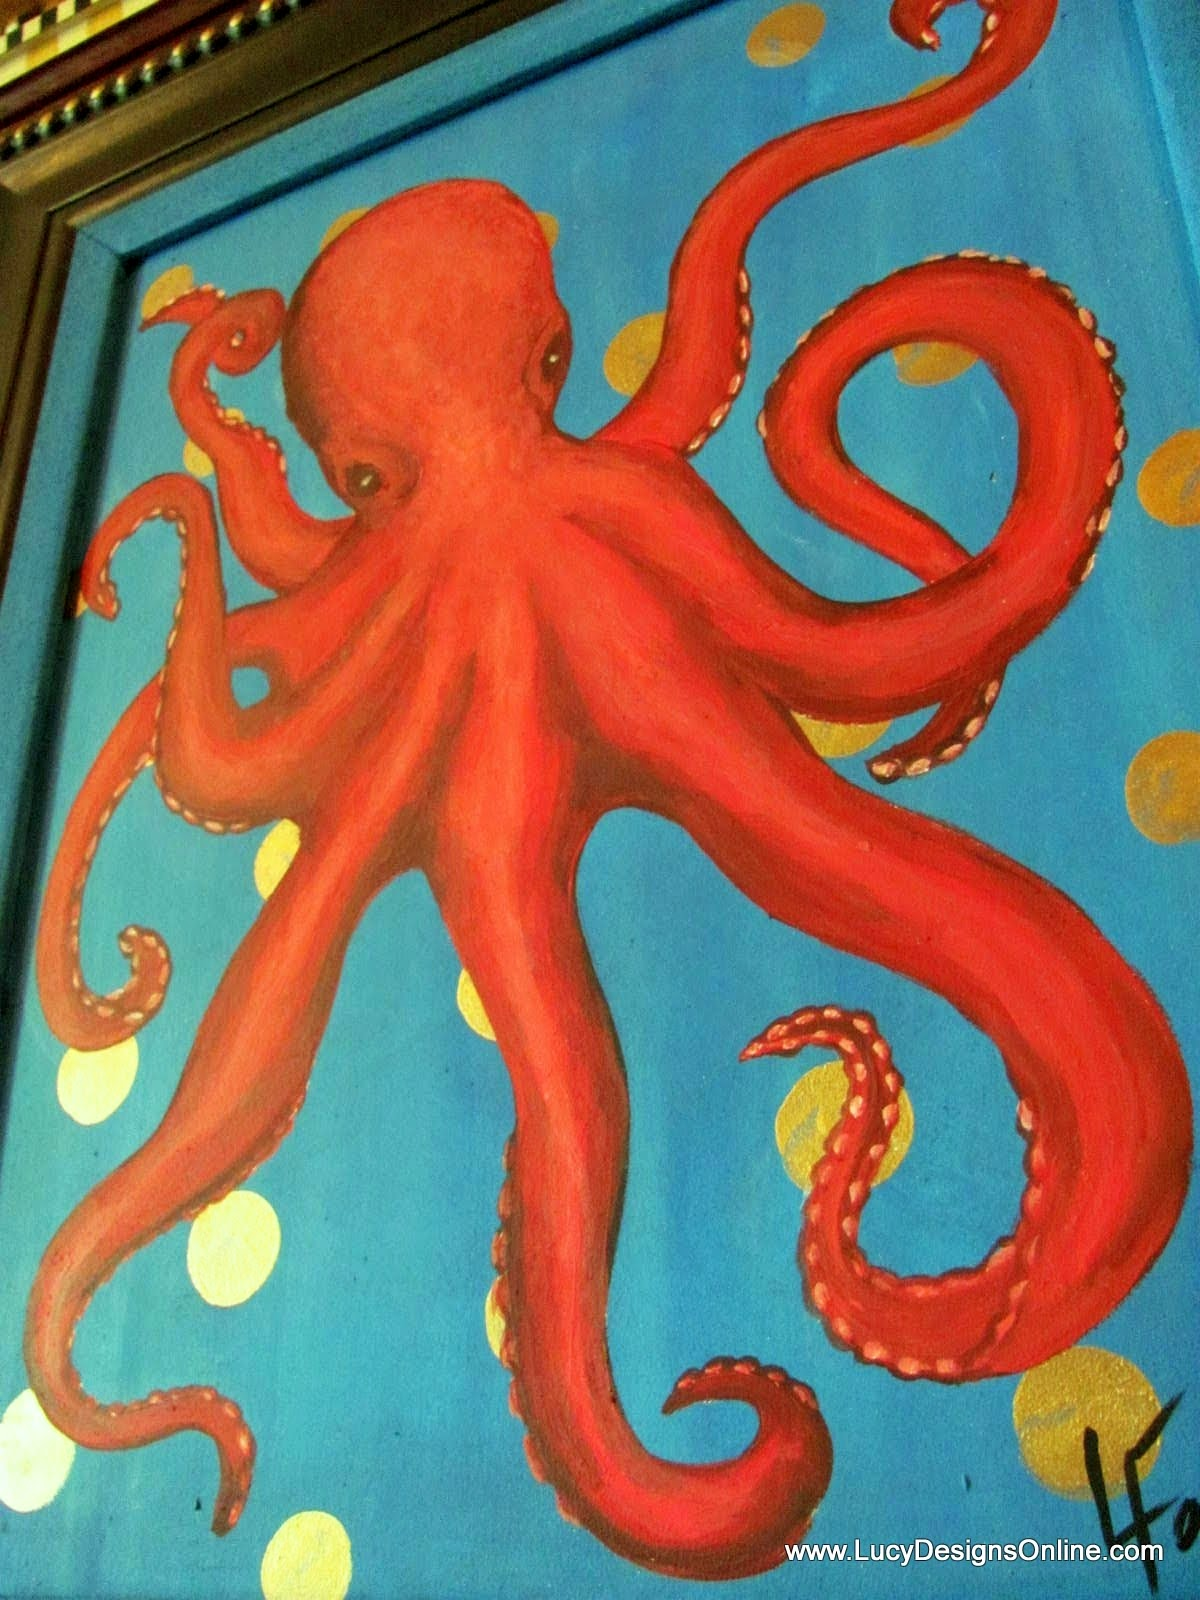 Original Art on Recycled Canvas Hand Painted Octopus and